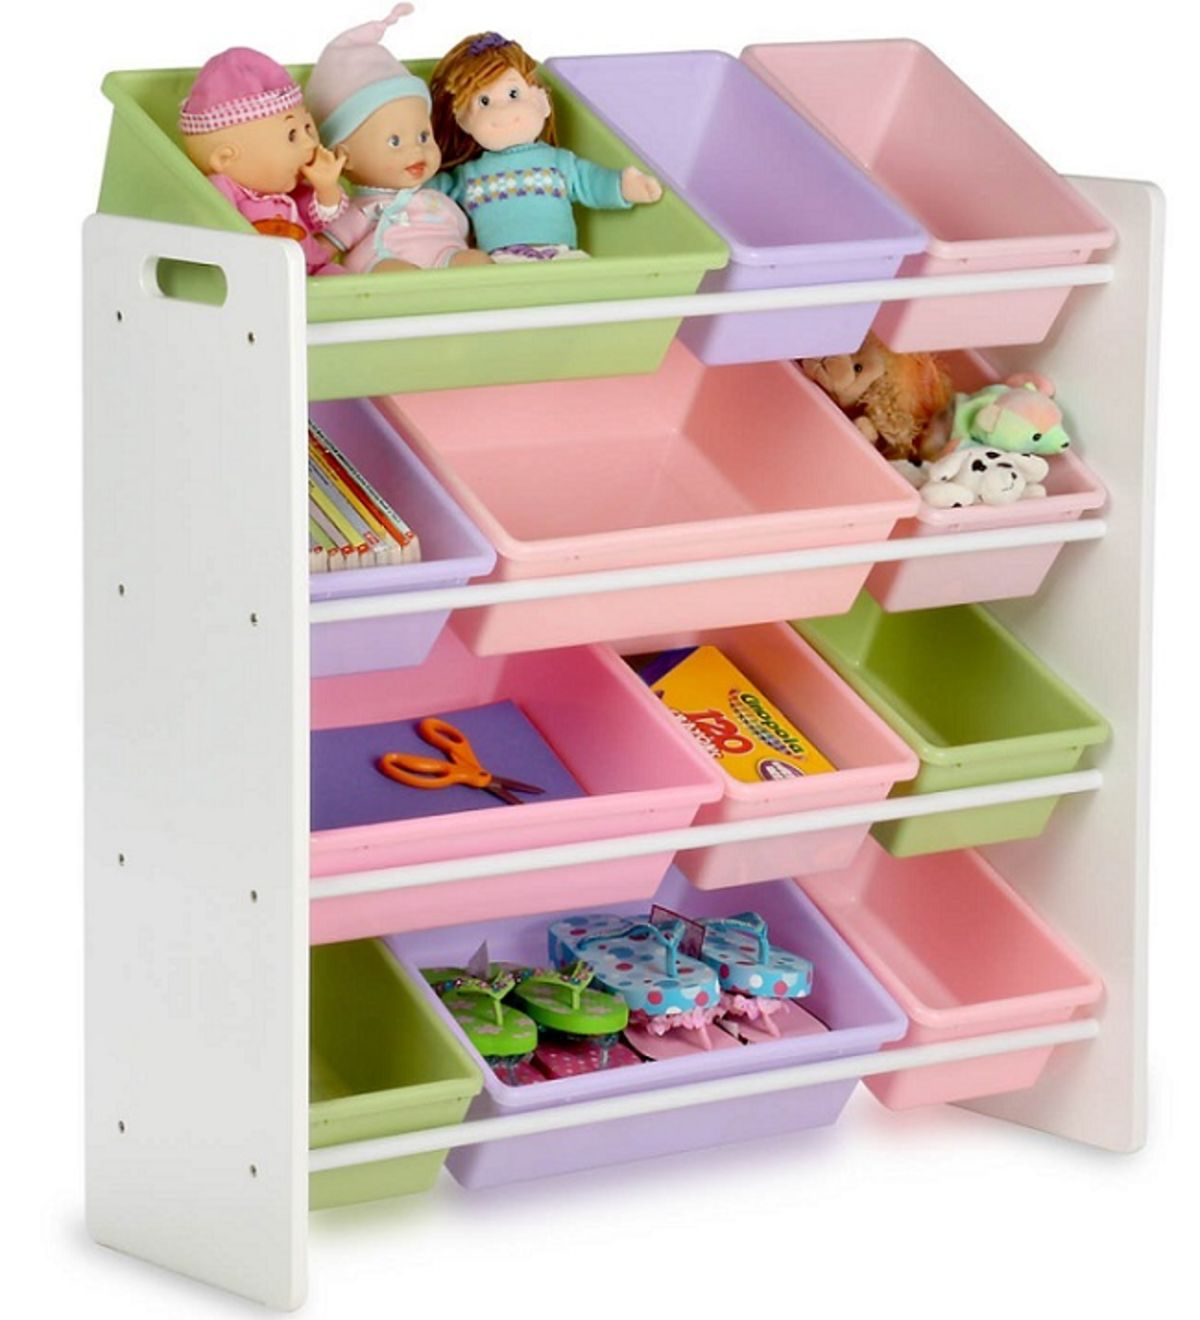 Headline for Toy storage organizer with bins